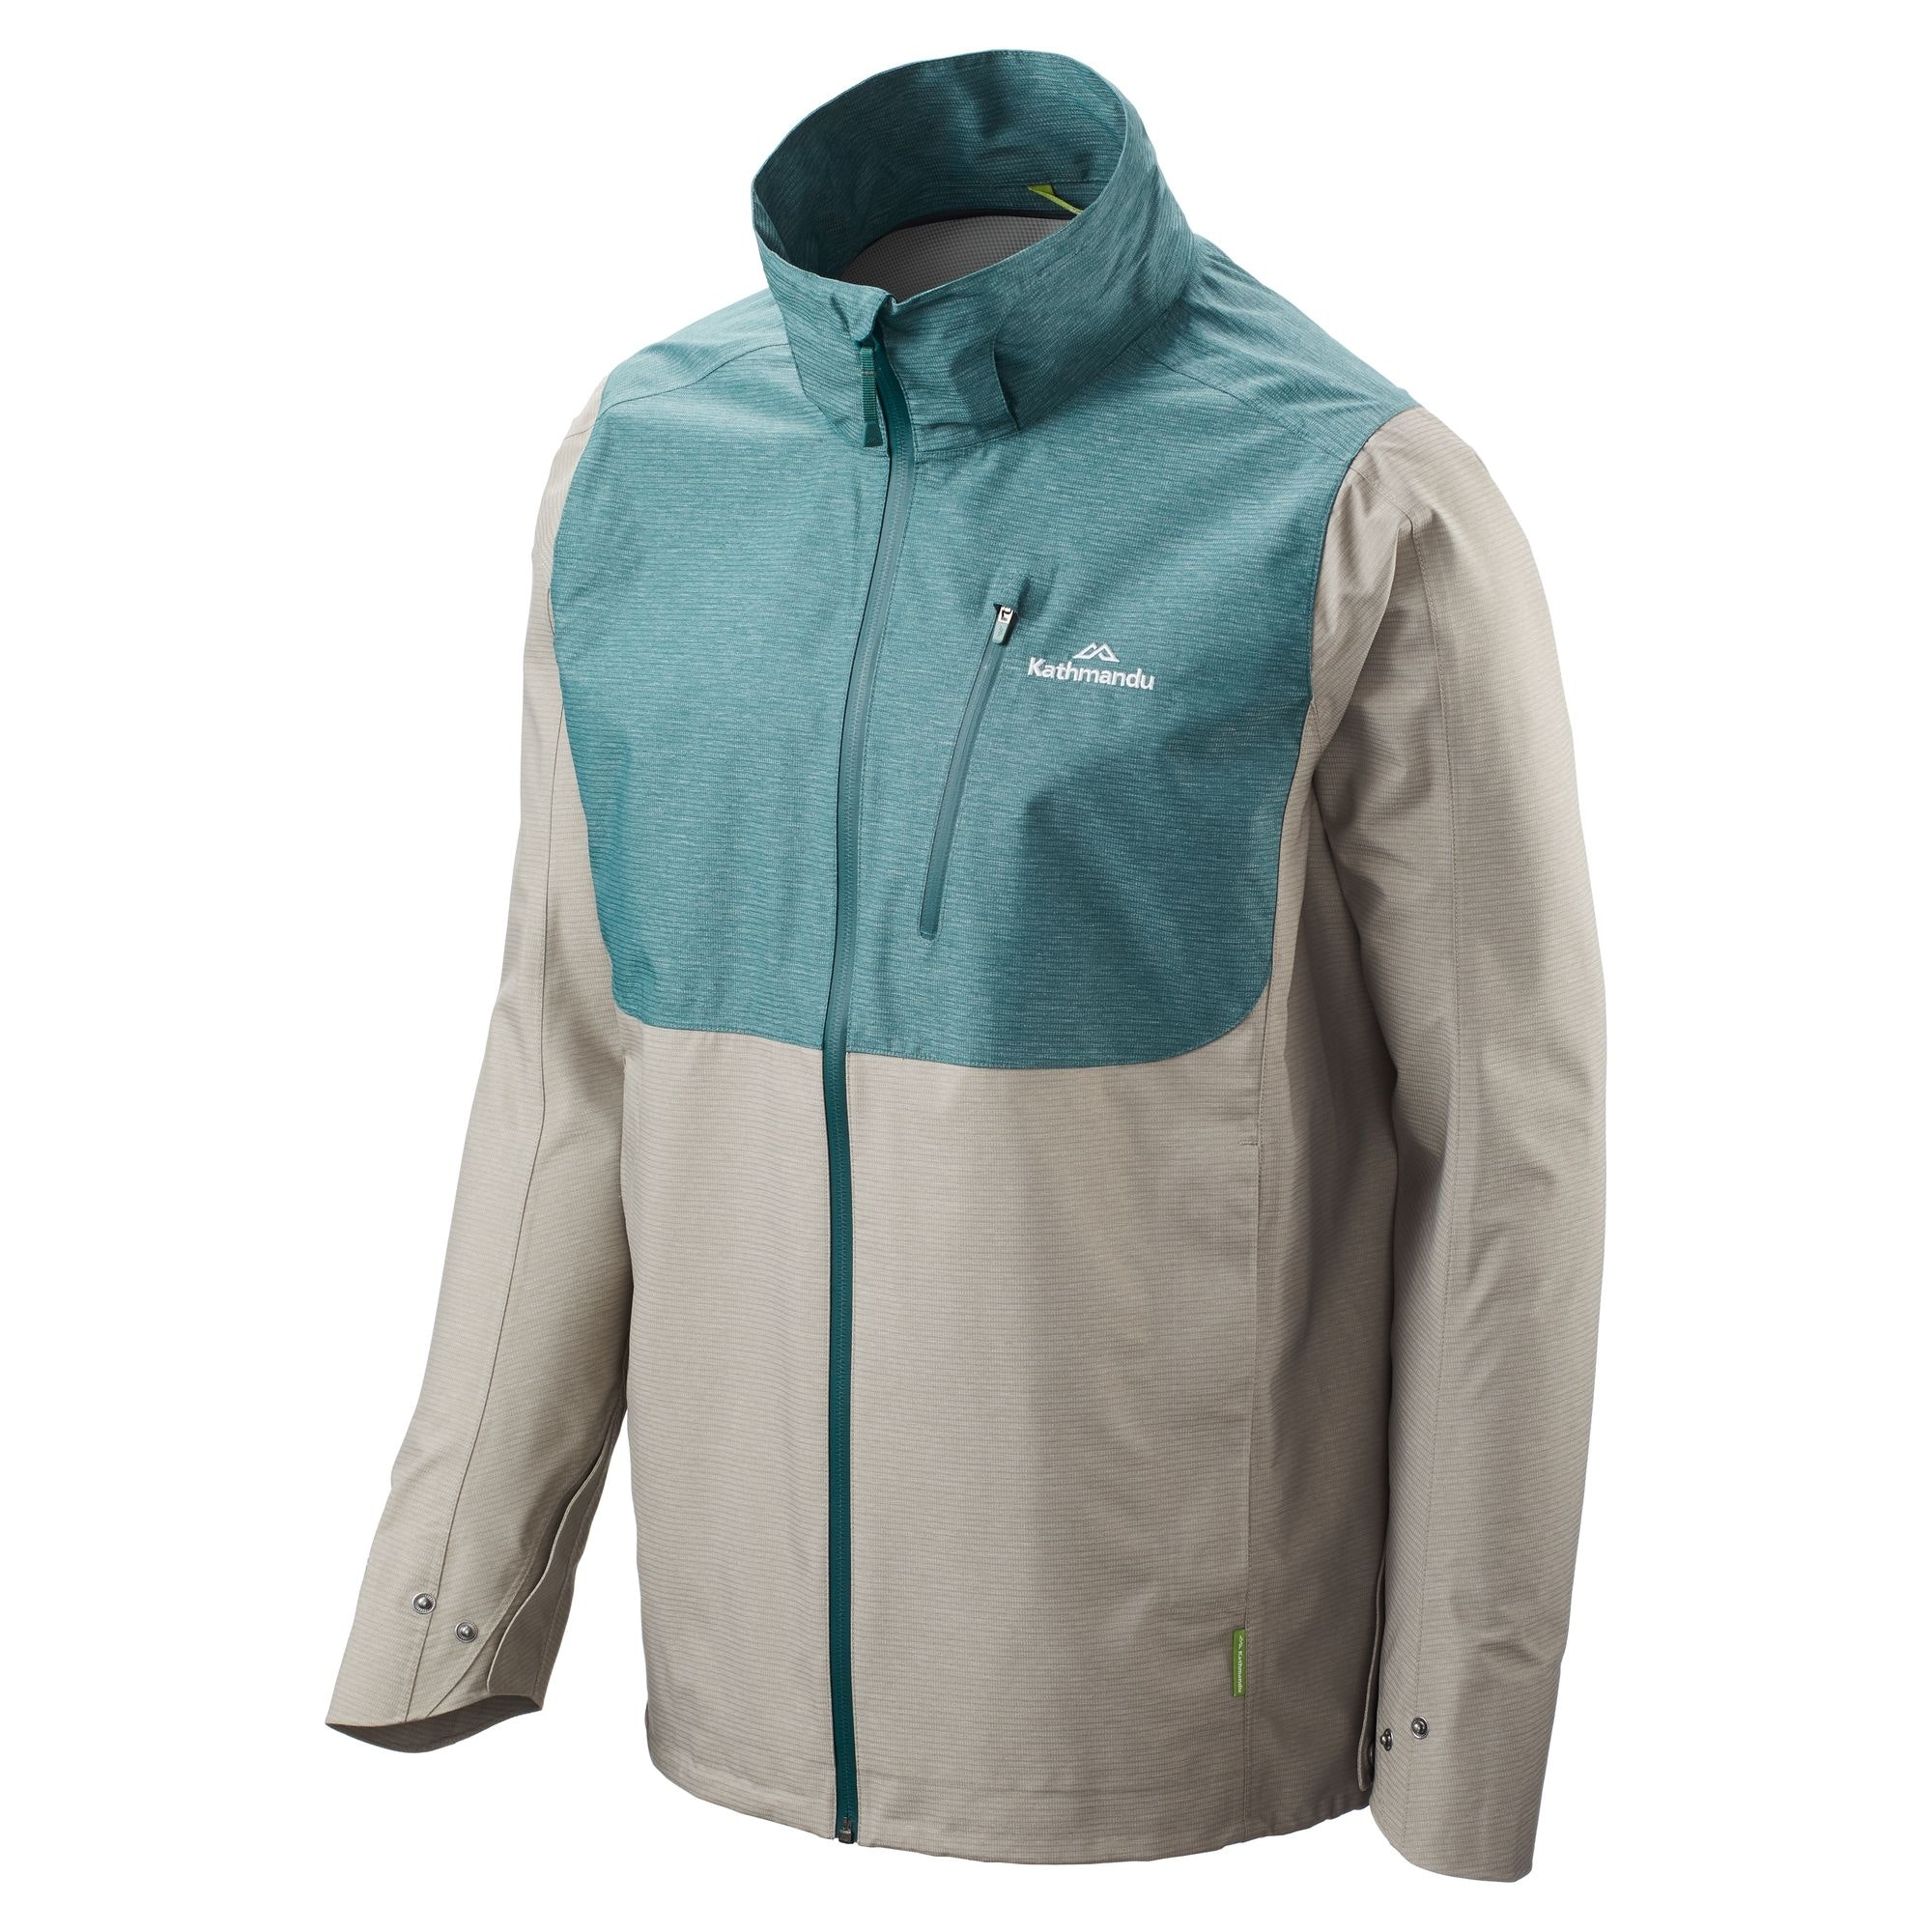 NEW-Kathmandu-Lawrence-Men-039-s-ngx-Windproof-Waterproof-Outdoor-Rain-Jacket-v2 thumbnail 19